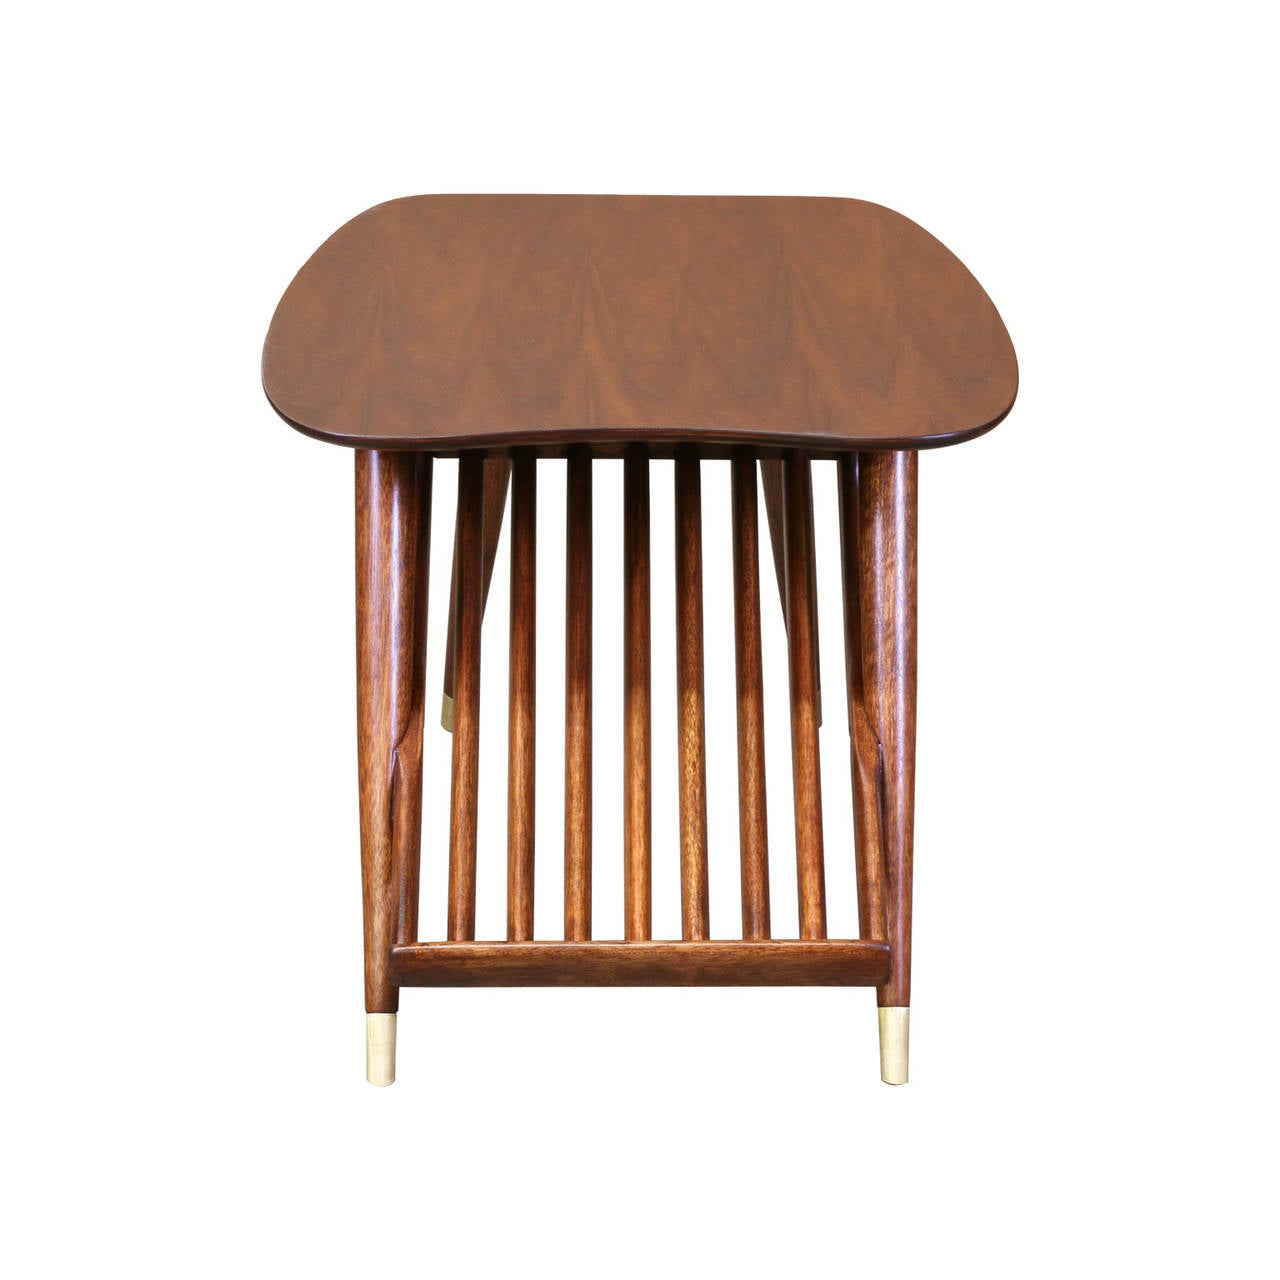 Mid century magazine side tables by ace hi for sale at 1stdibs for Mid century modern furniture hawaii